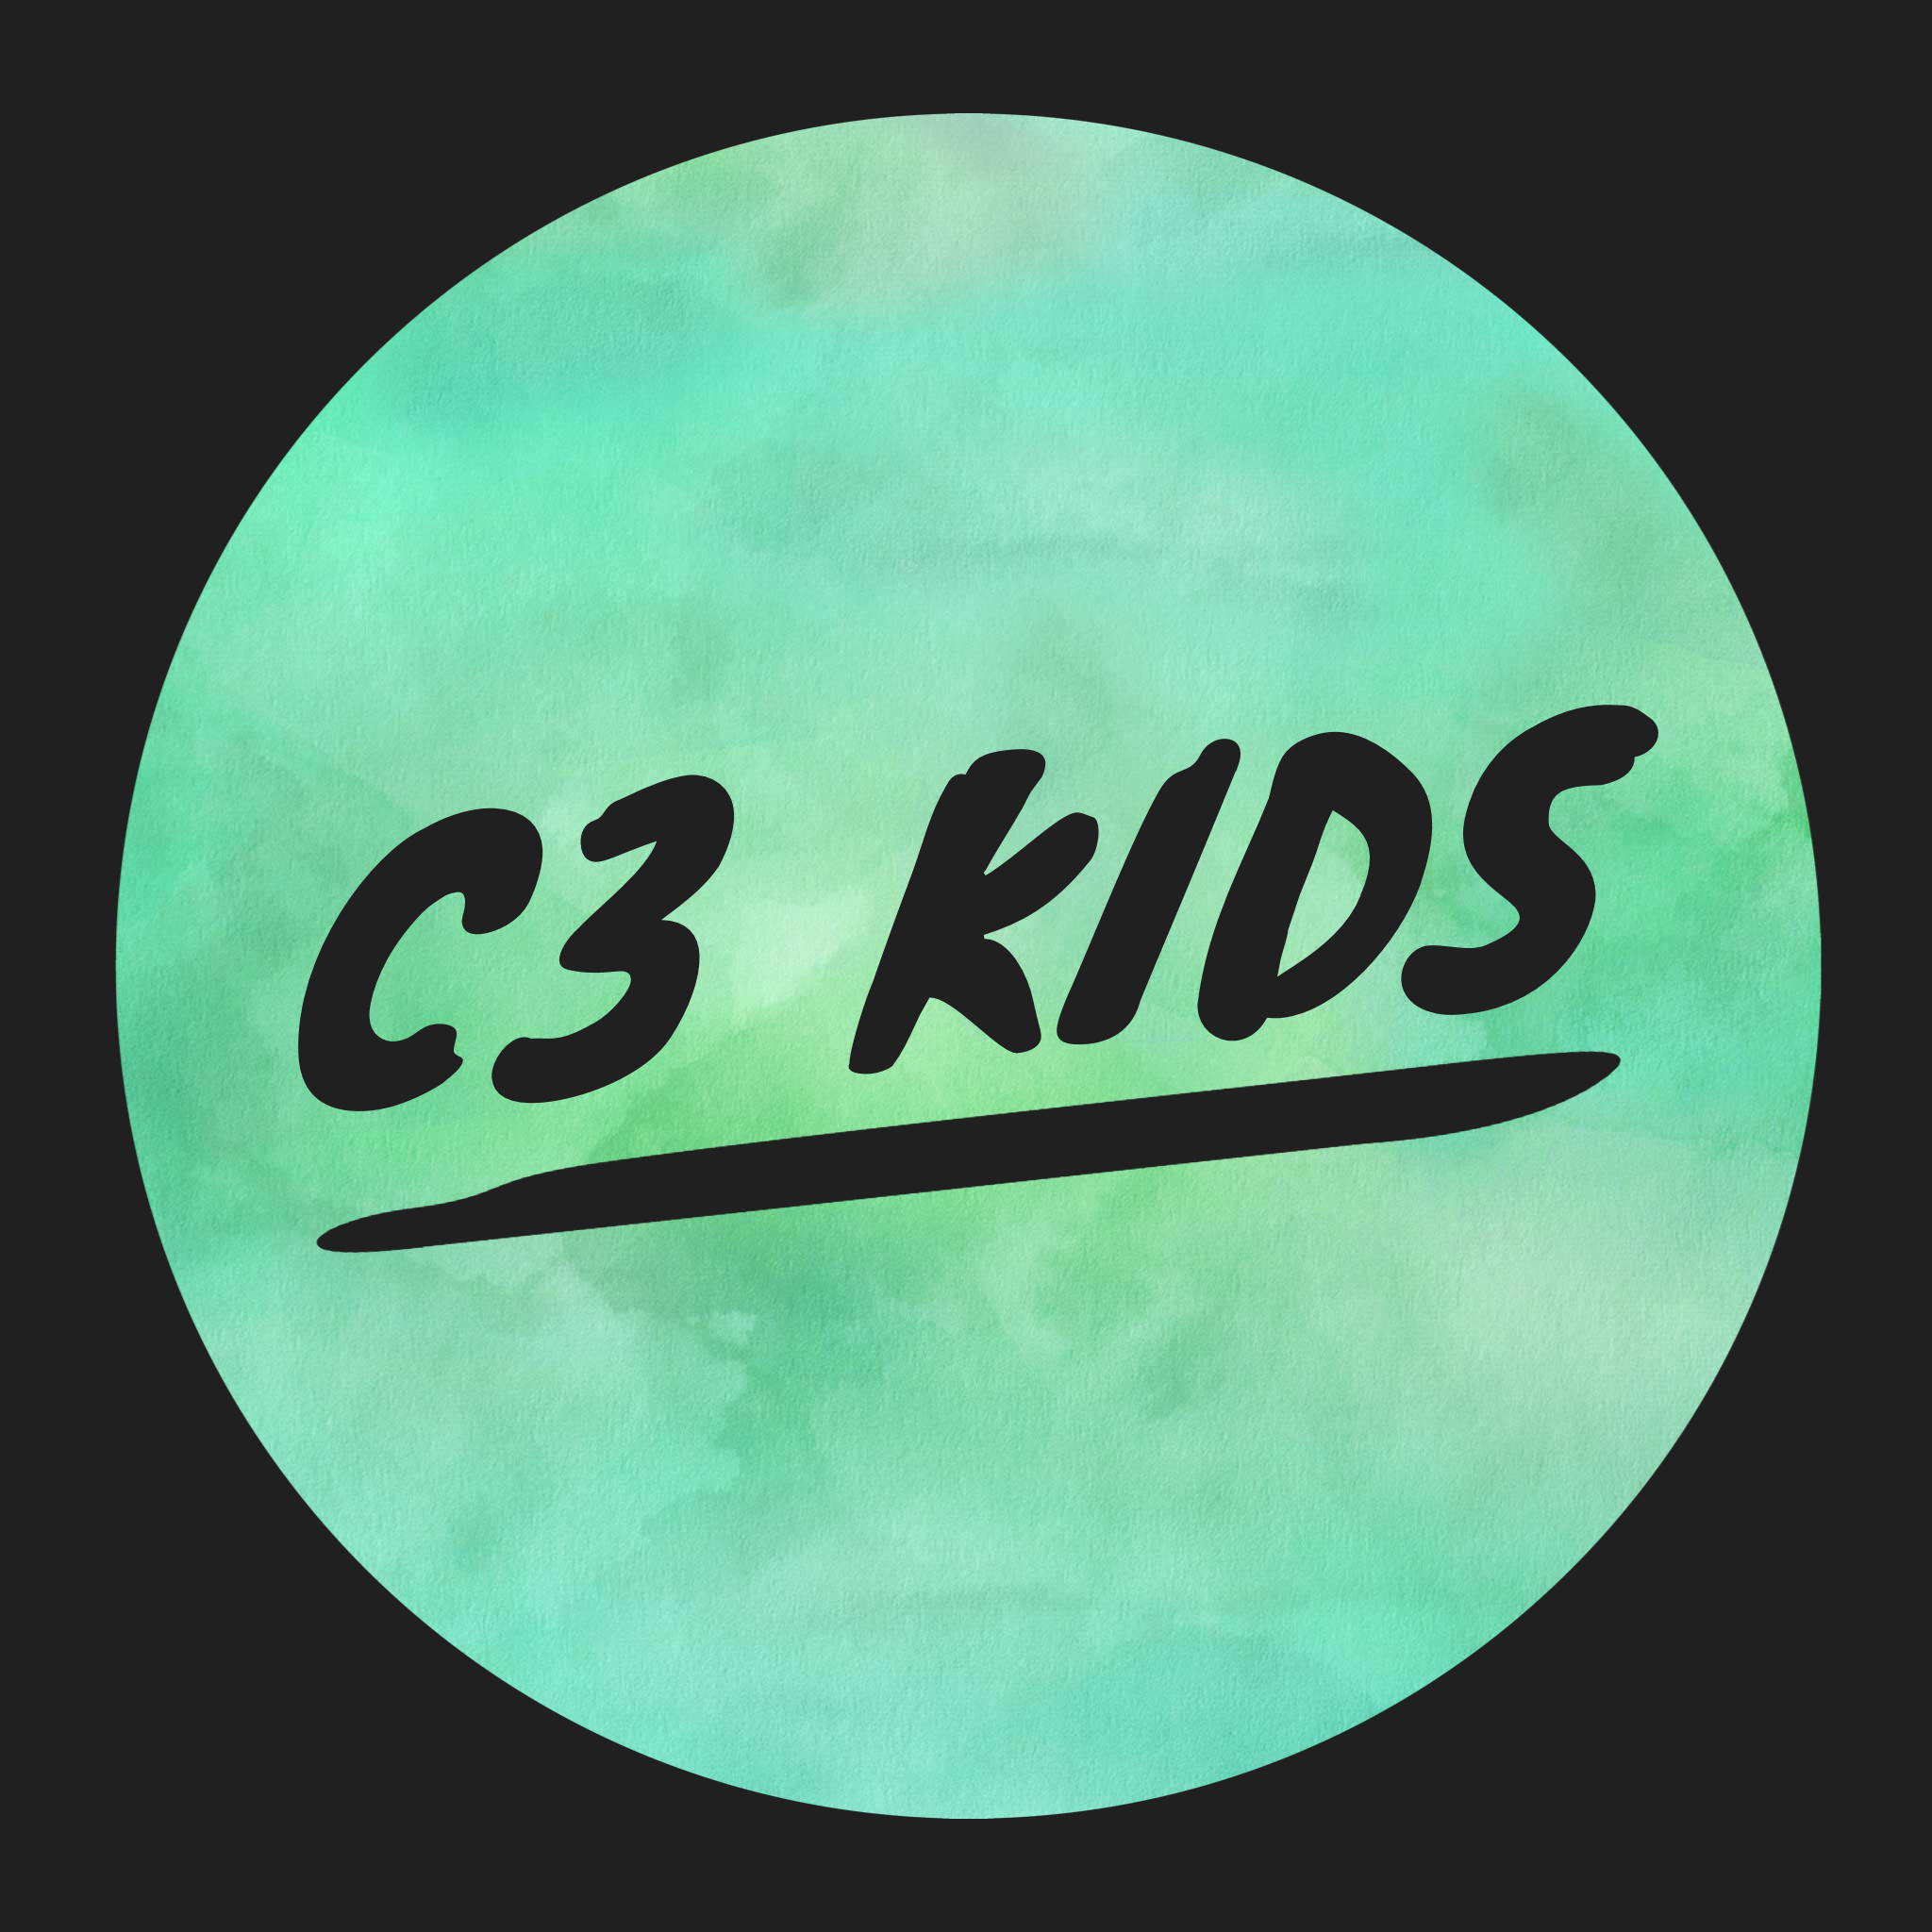 c3 kids button.PNG